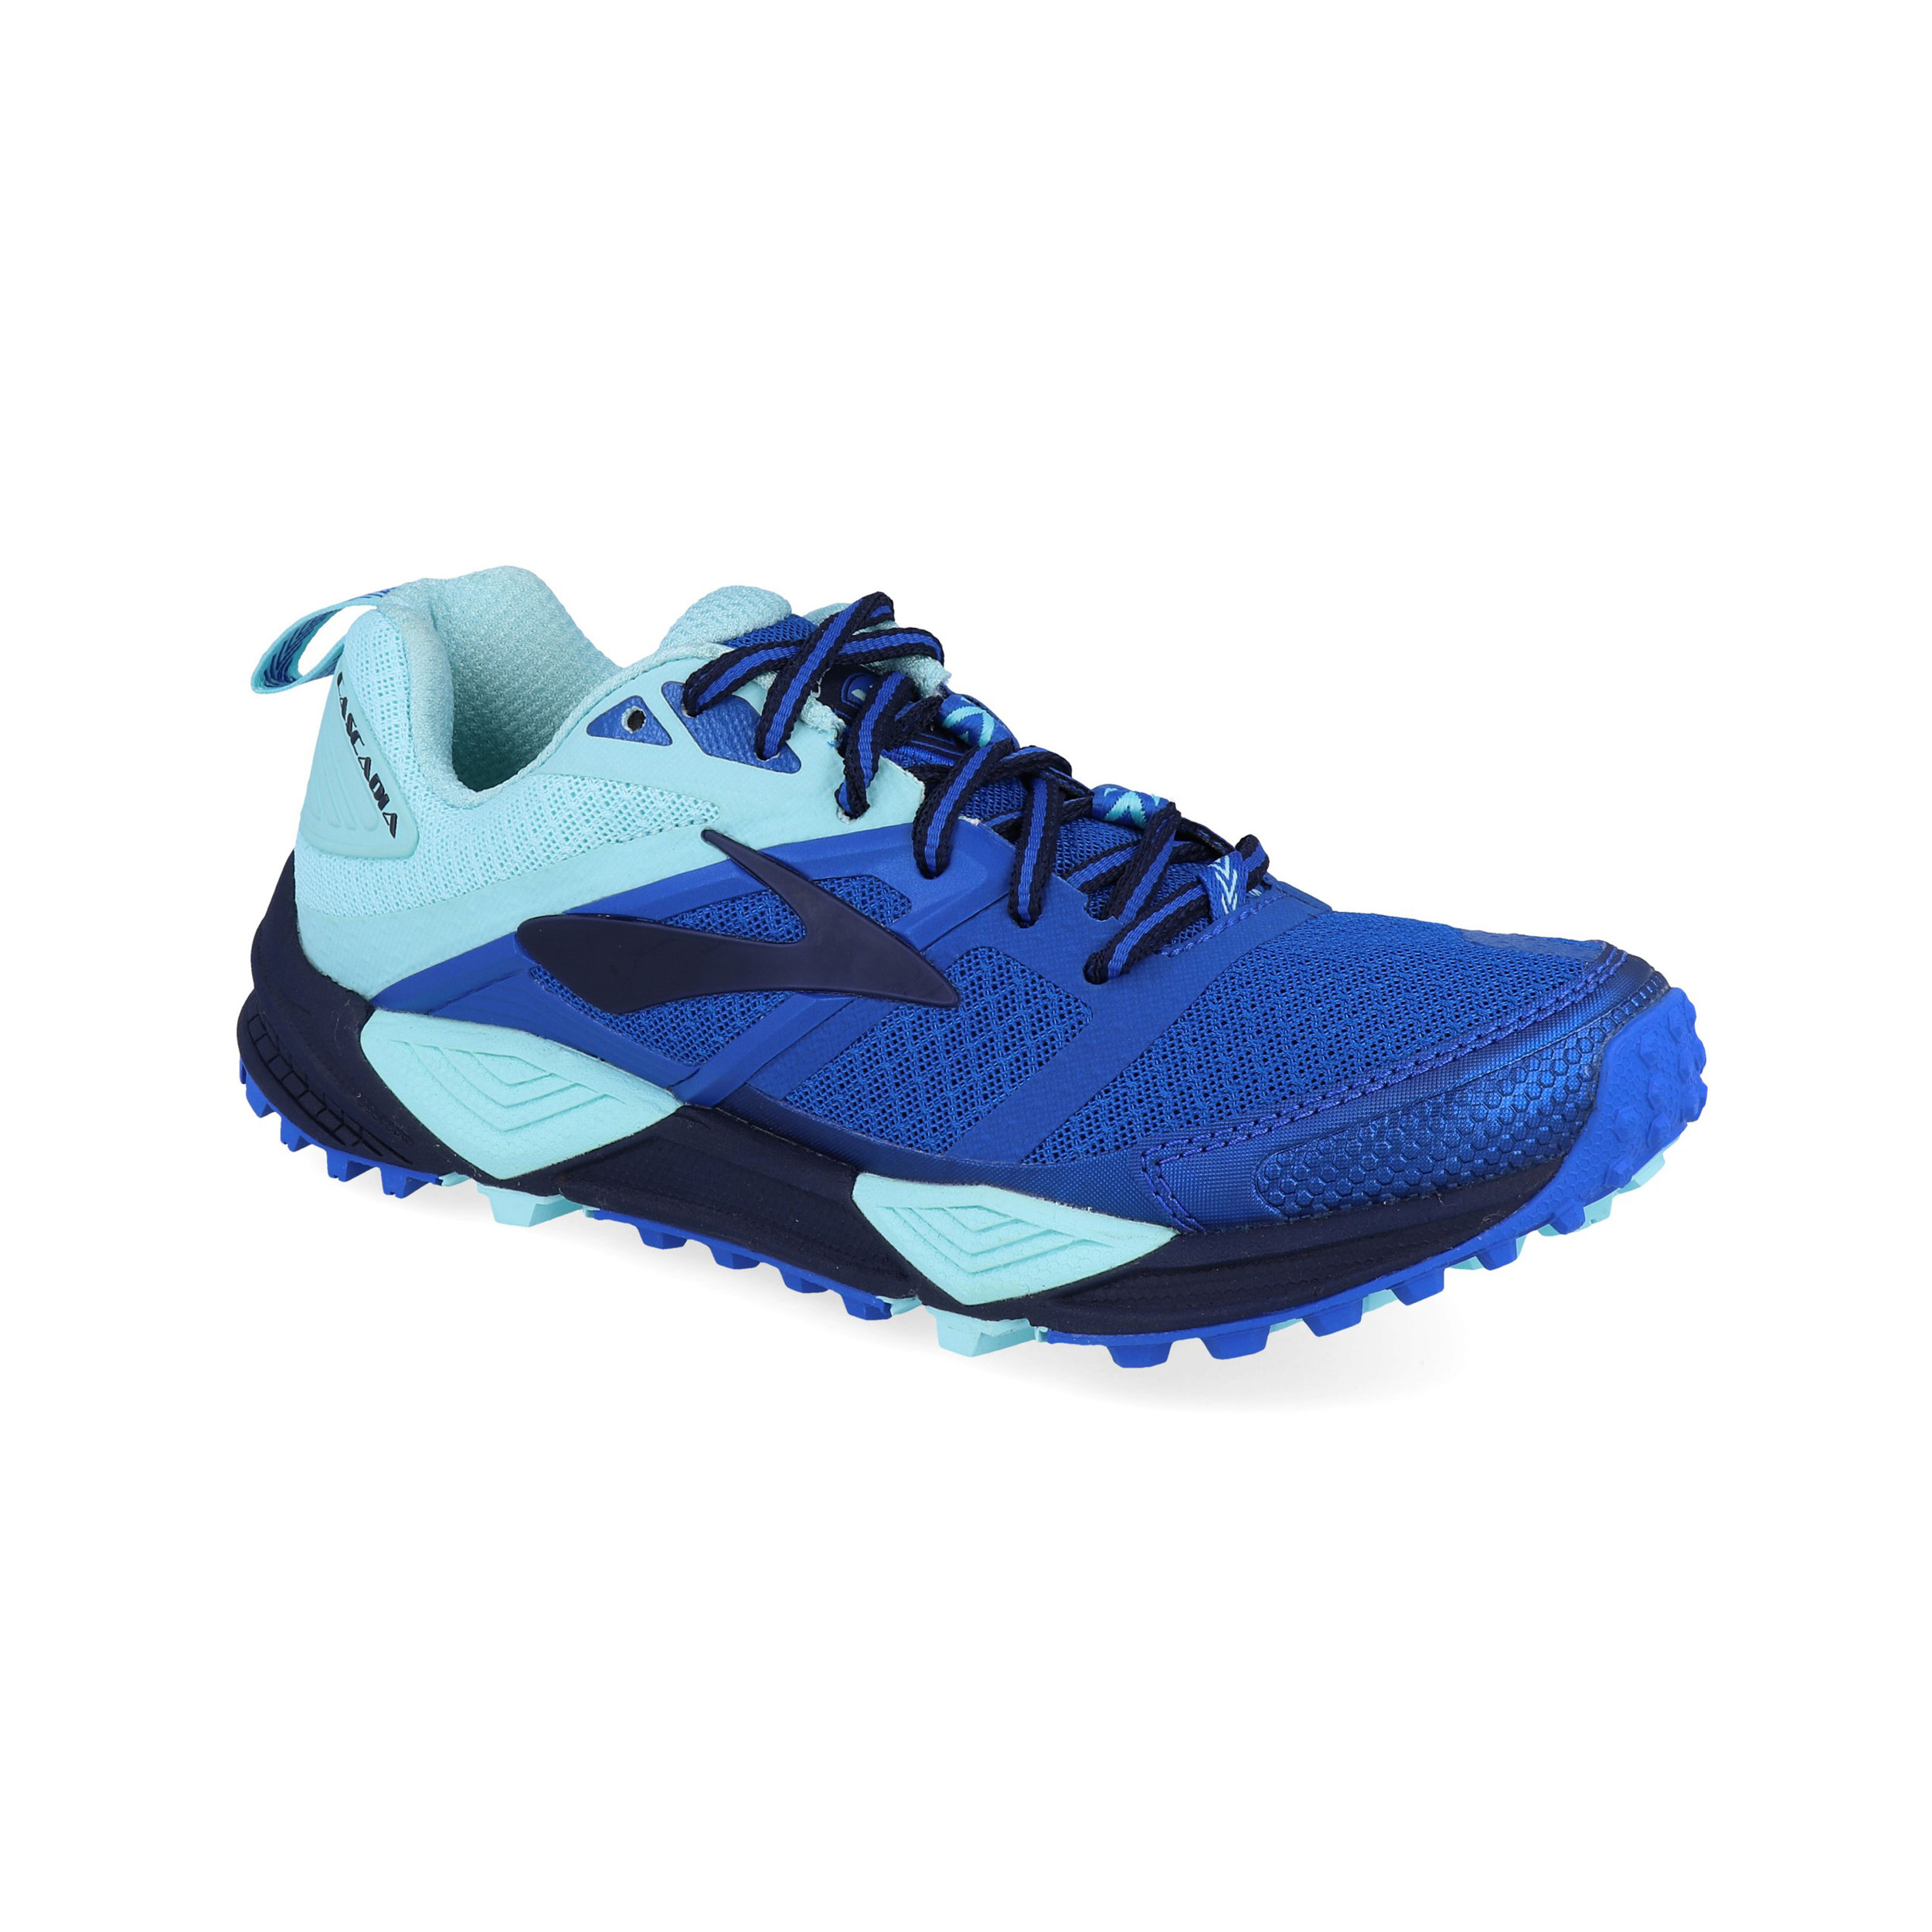 f4af4e1034215 Brooks Womens Cascadia 12 Trail Running Shoes Trainers Sneakers Blue Navy  Sports